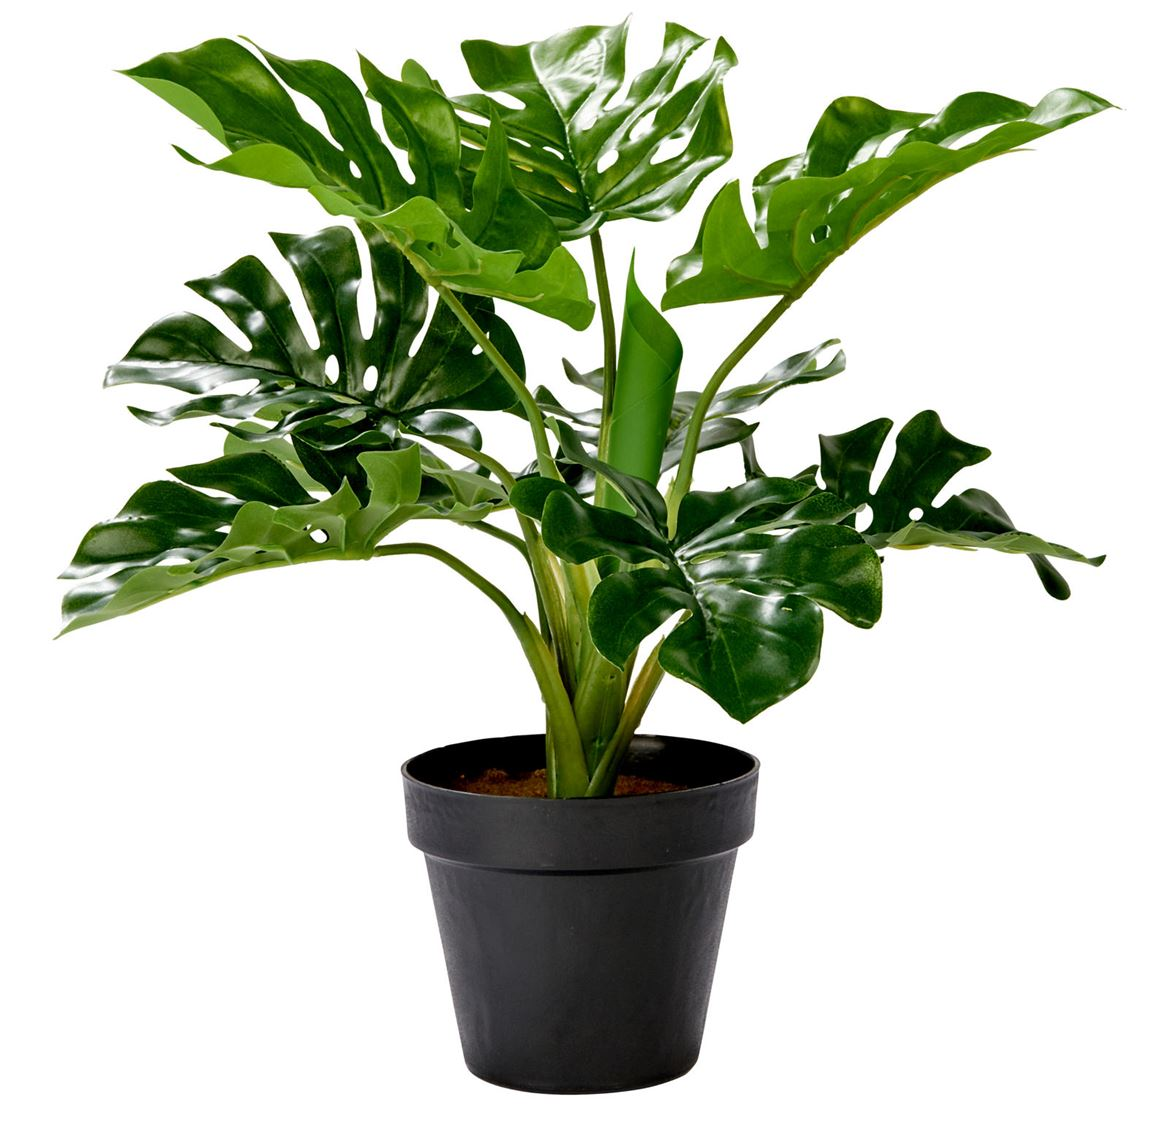 Tropical plante en pot produits feelgood pour la maison for Plante maison